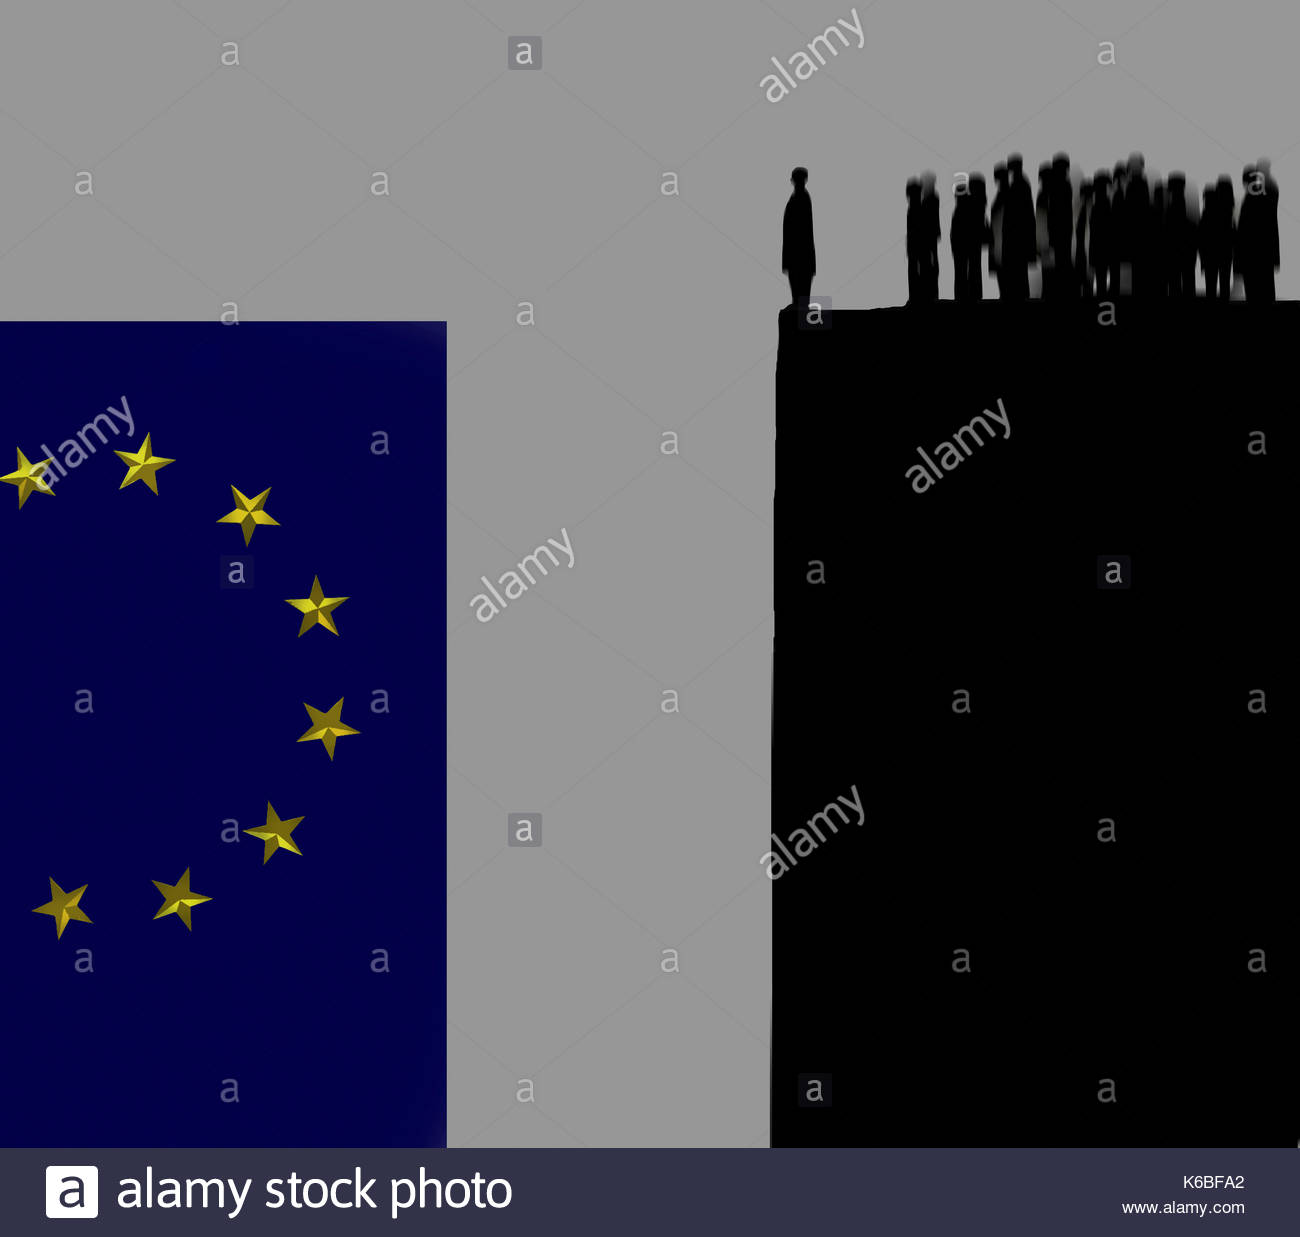 People queuing on top of cliff looking across gap at European Union flag - Stock Image